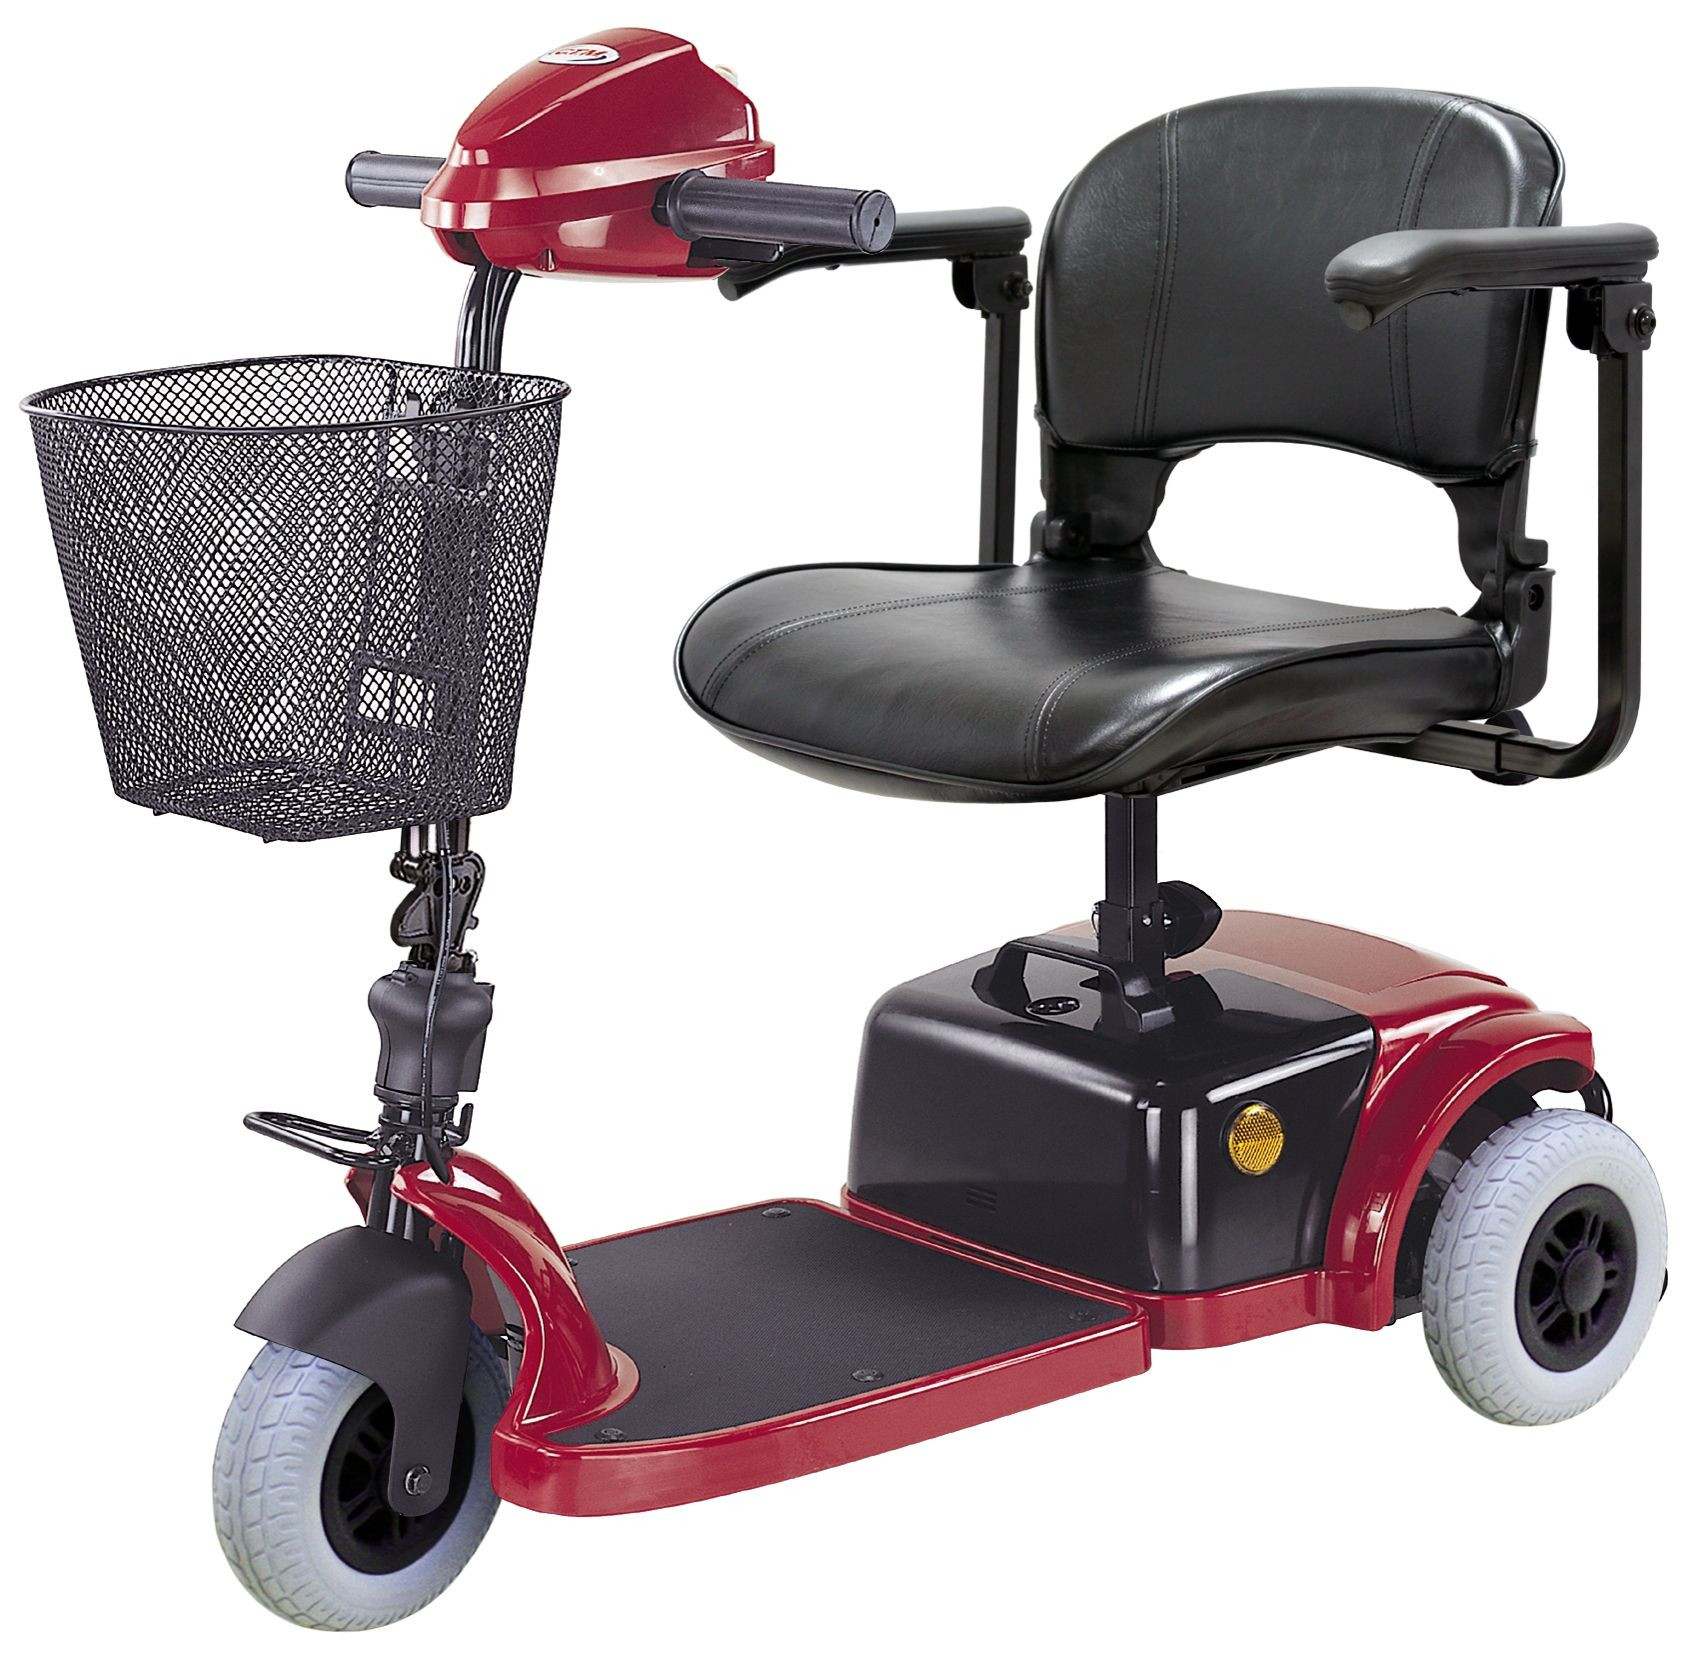 Ctm hs 125 mobility scooter for sale lowest prices tax for Motorized wheelchair for sale